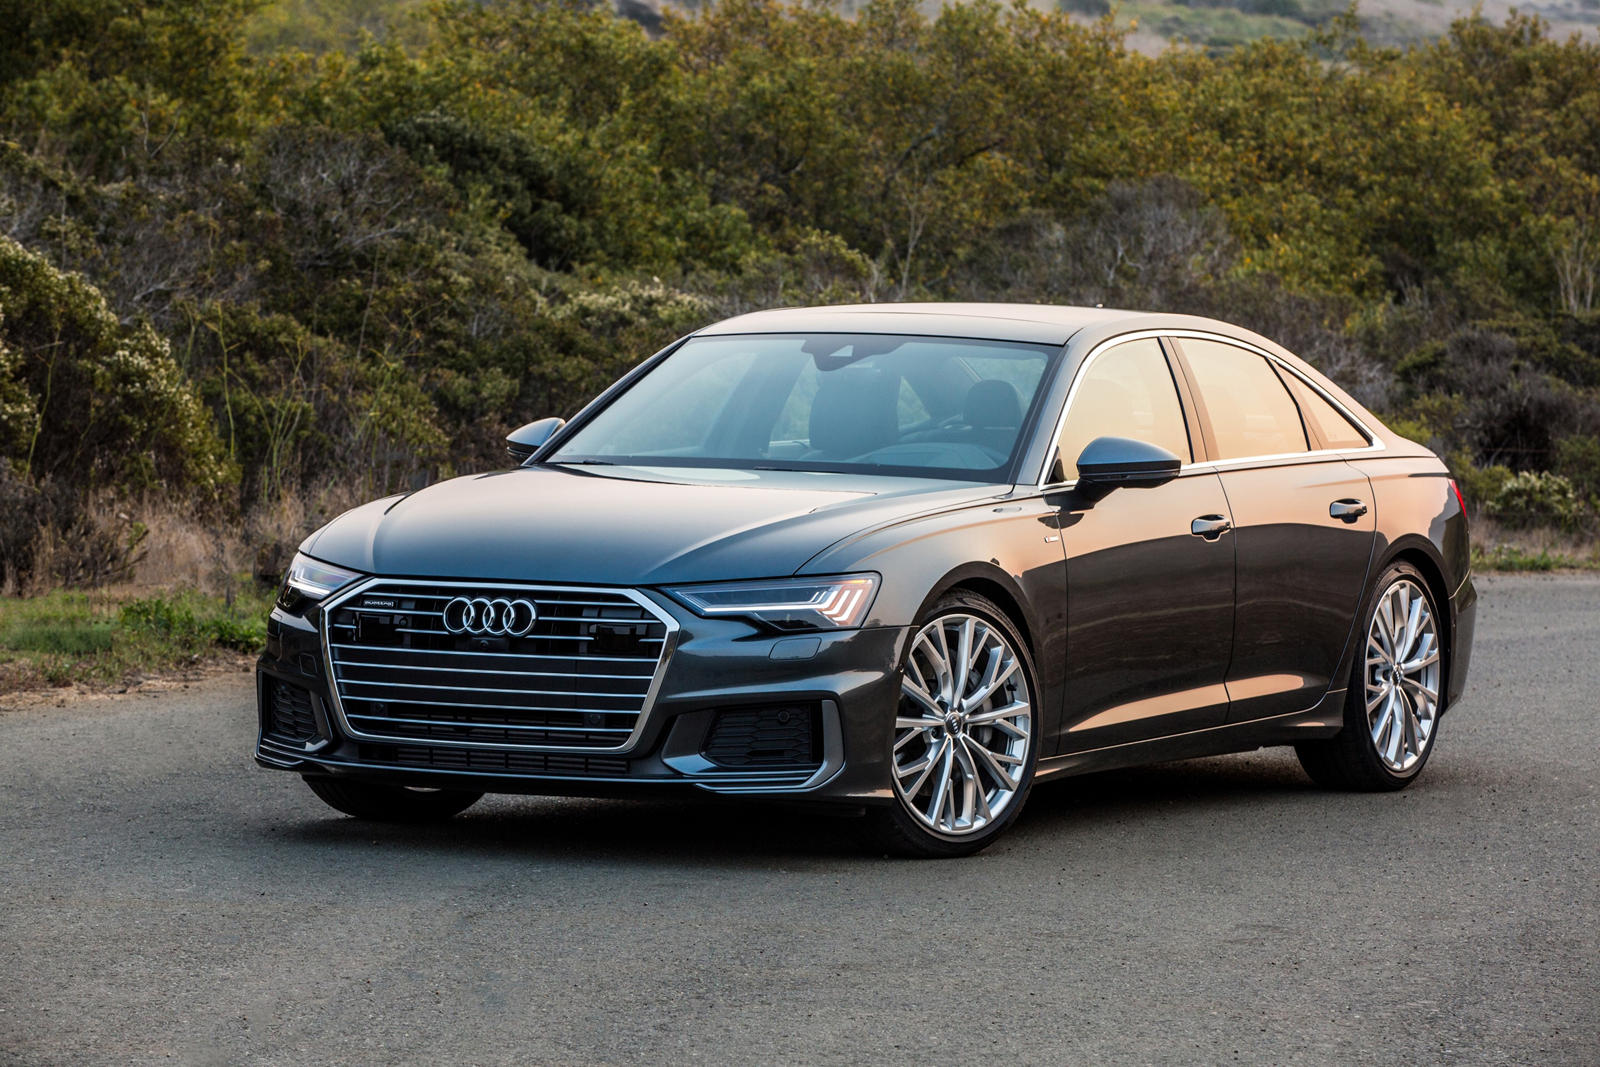 Audi A6 in all its might